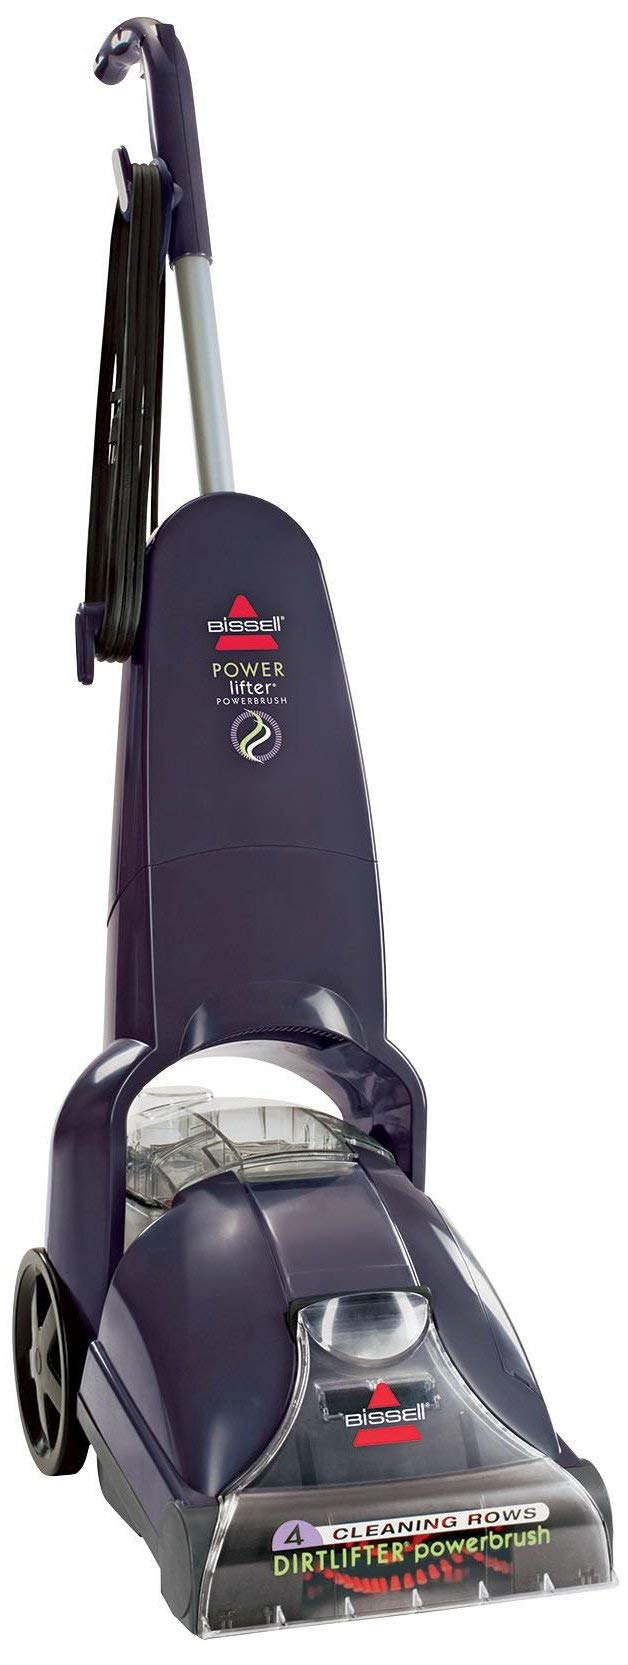 BISSELL PowerLifter PowerBrush Upright Carpet Cleaner and Shampooer, 1622 (Renewed) by Bissell